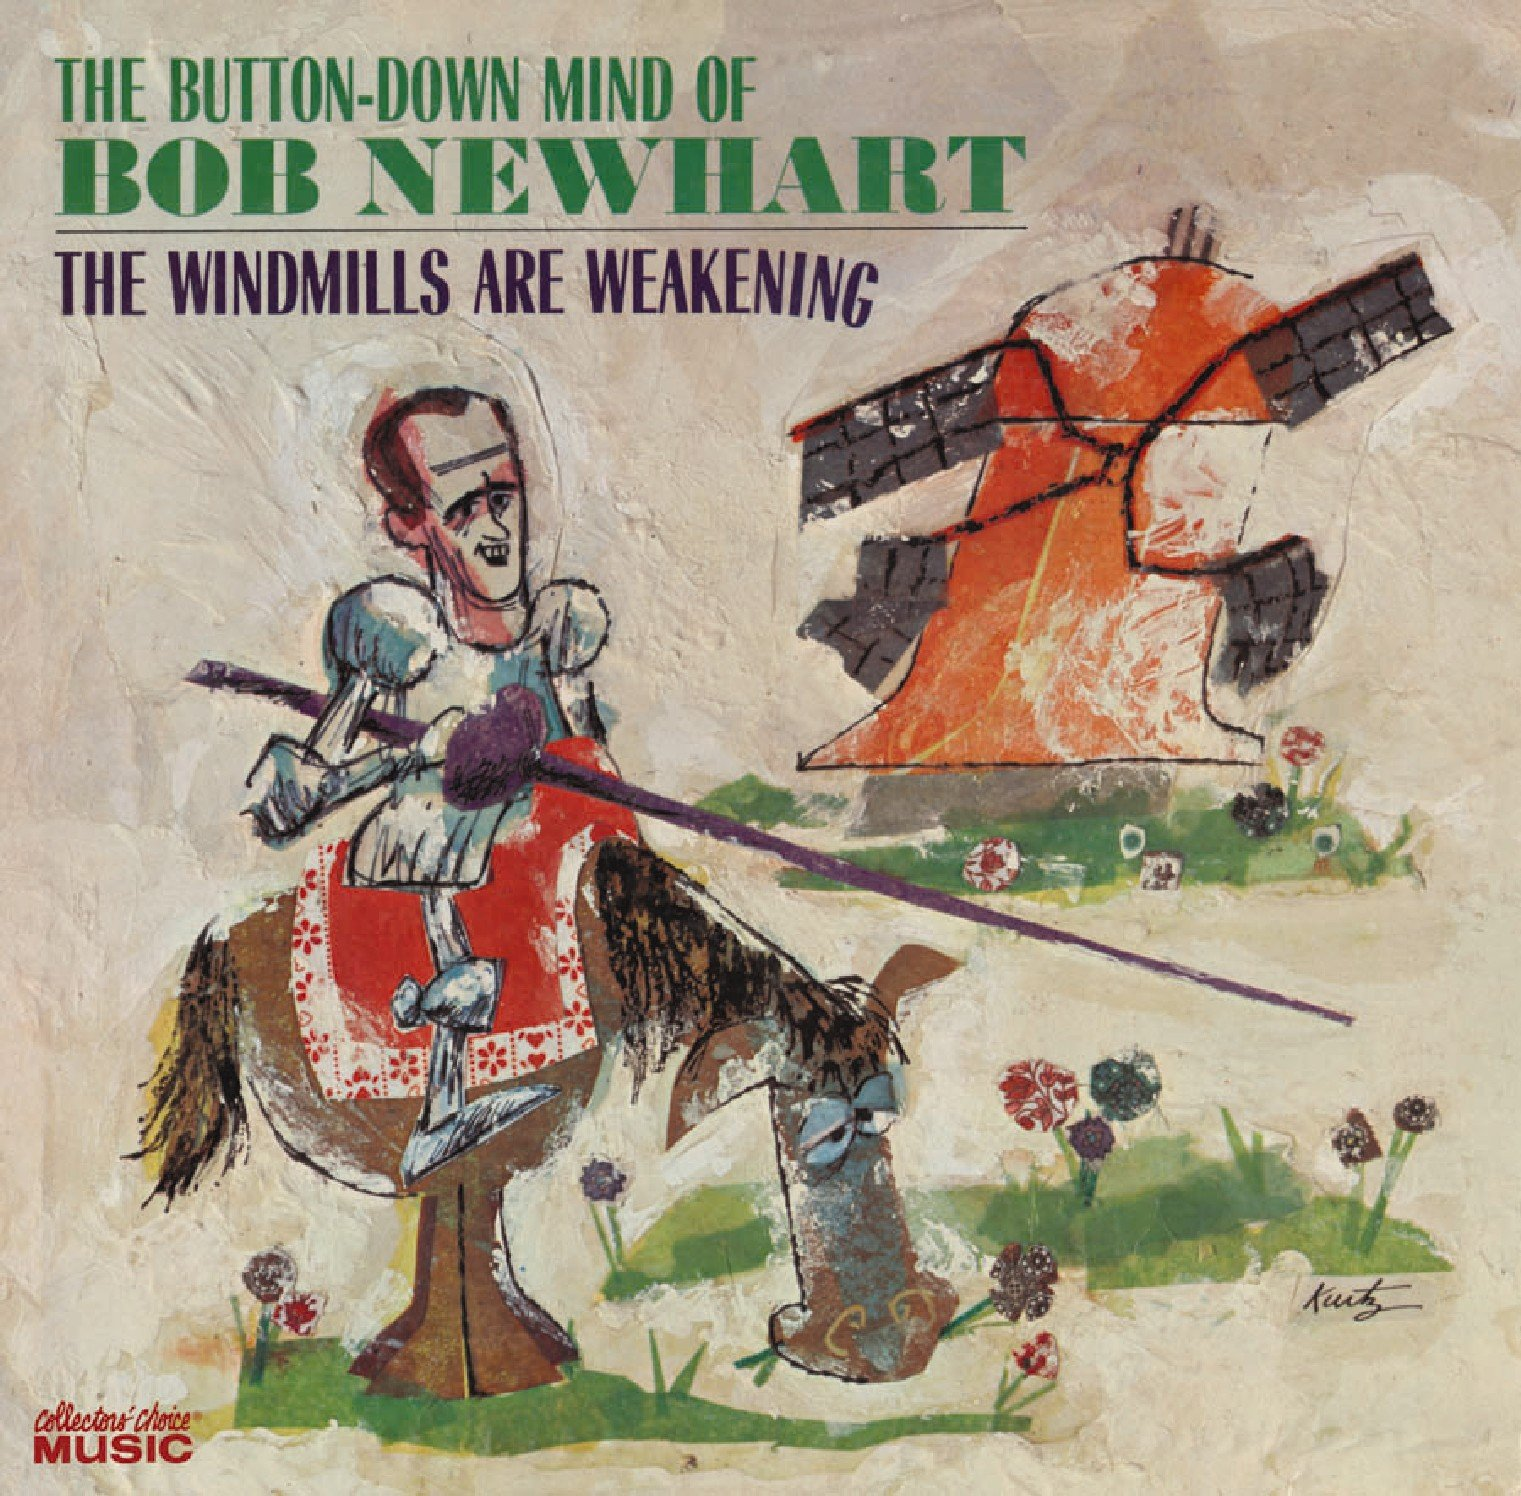 The Button-Down Mind of Bob Newhart/The Windmills Are Weakening